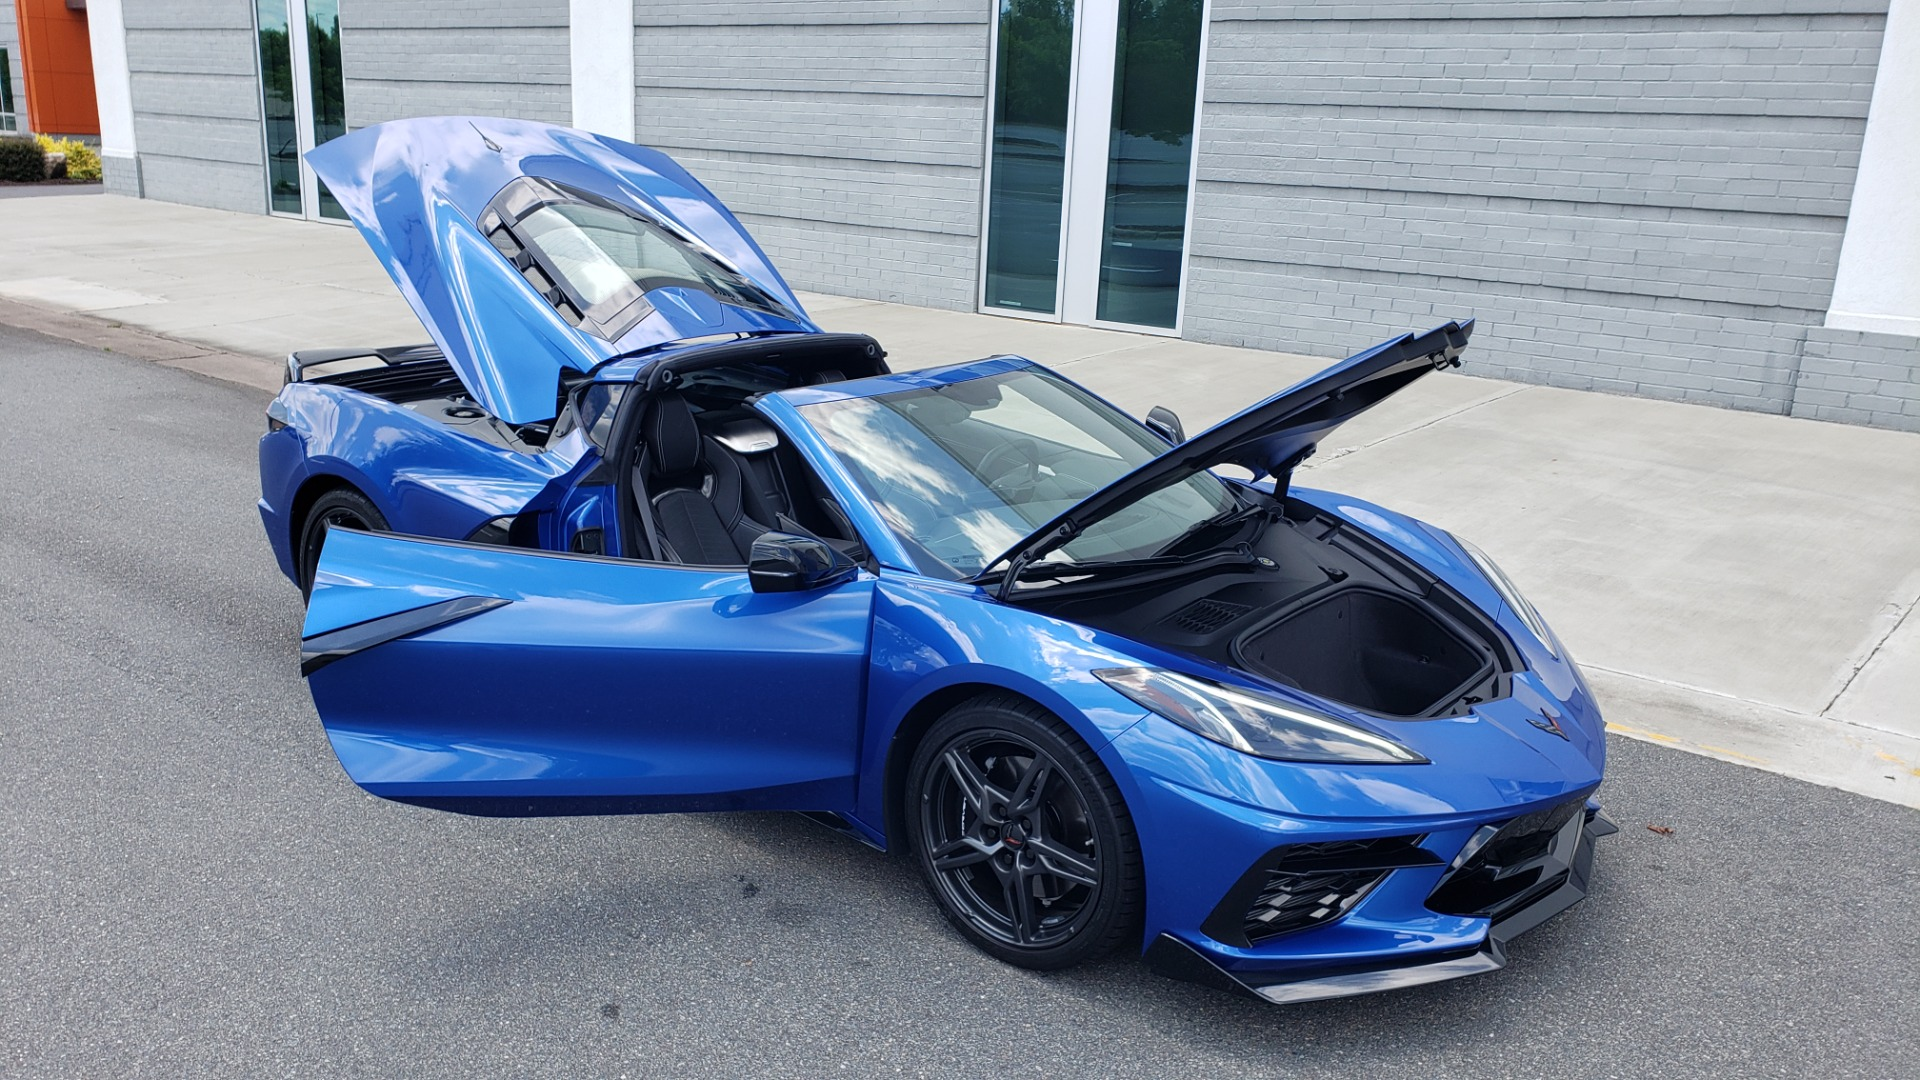 Used 2020 Chevrolet CORVETTE C8 STINGRAY COUPE 2LT / PERF & Z51 PKG / NAV / BOSE / 8-SPD AUTO / REARVIEW for sale Sold at Formula Imports in Charlotte NC 28227 23